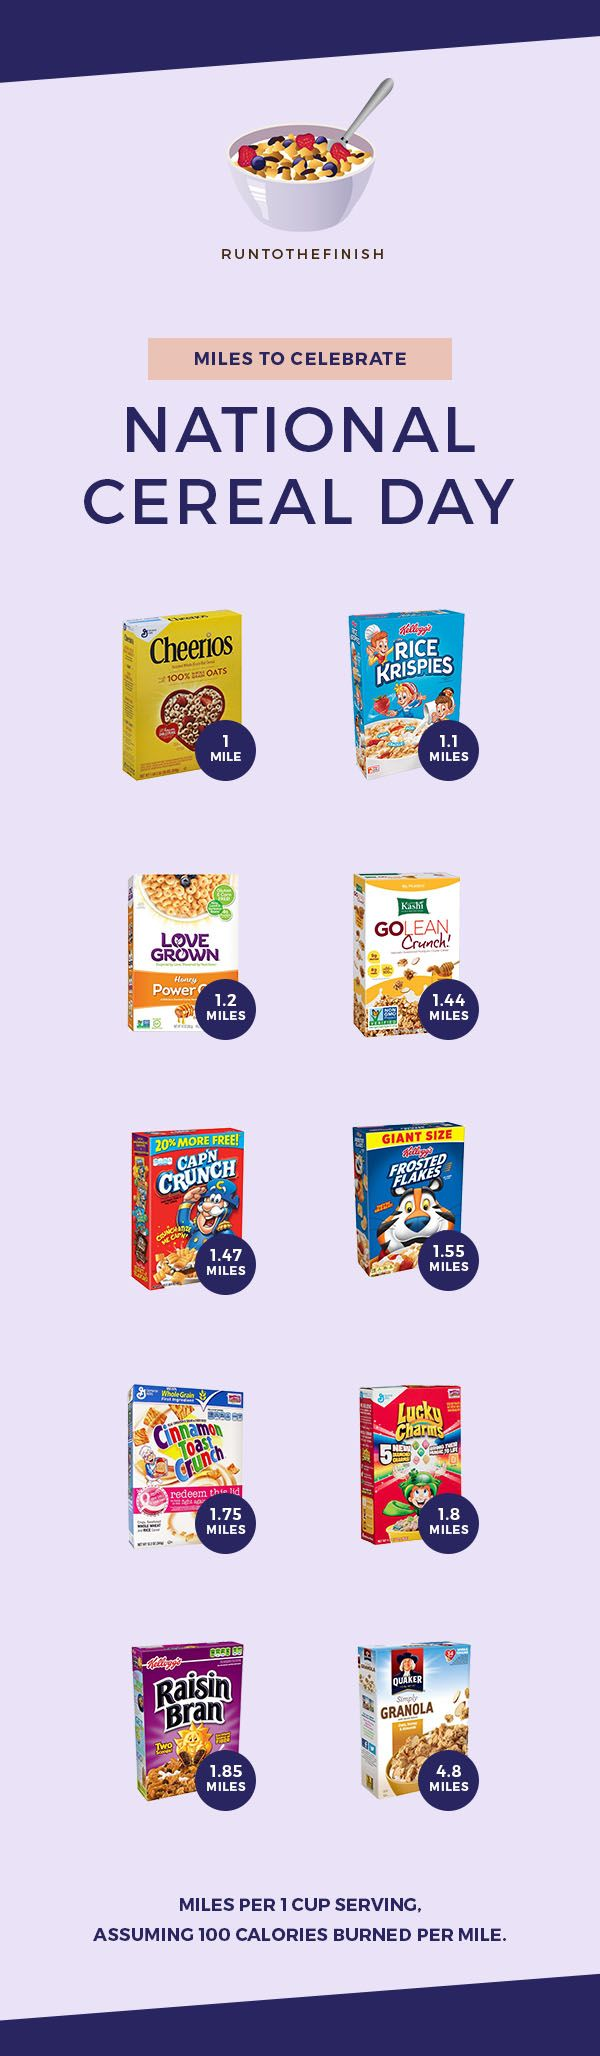 Miles per bowl of cereal - click for why cereal is a great runners fuel